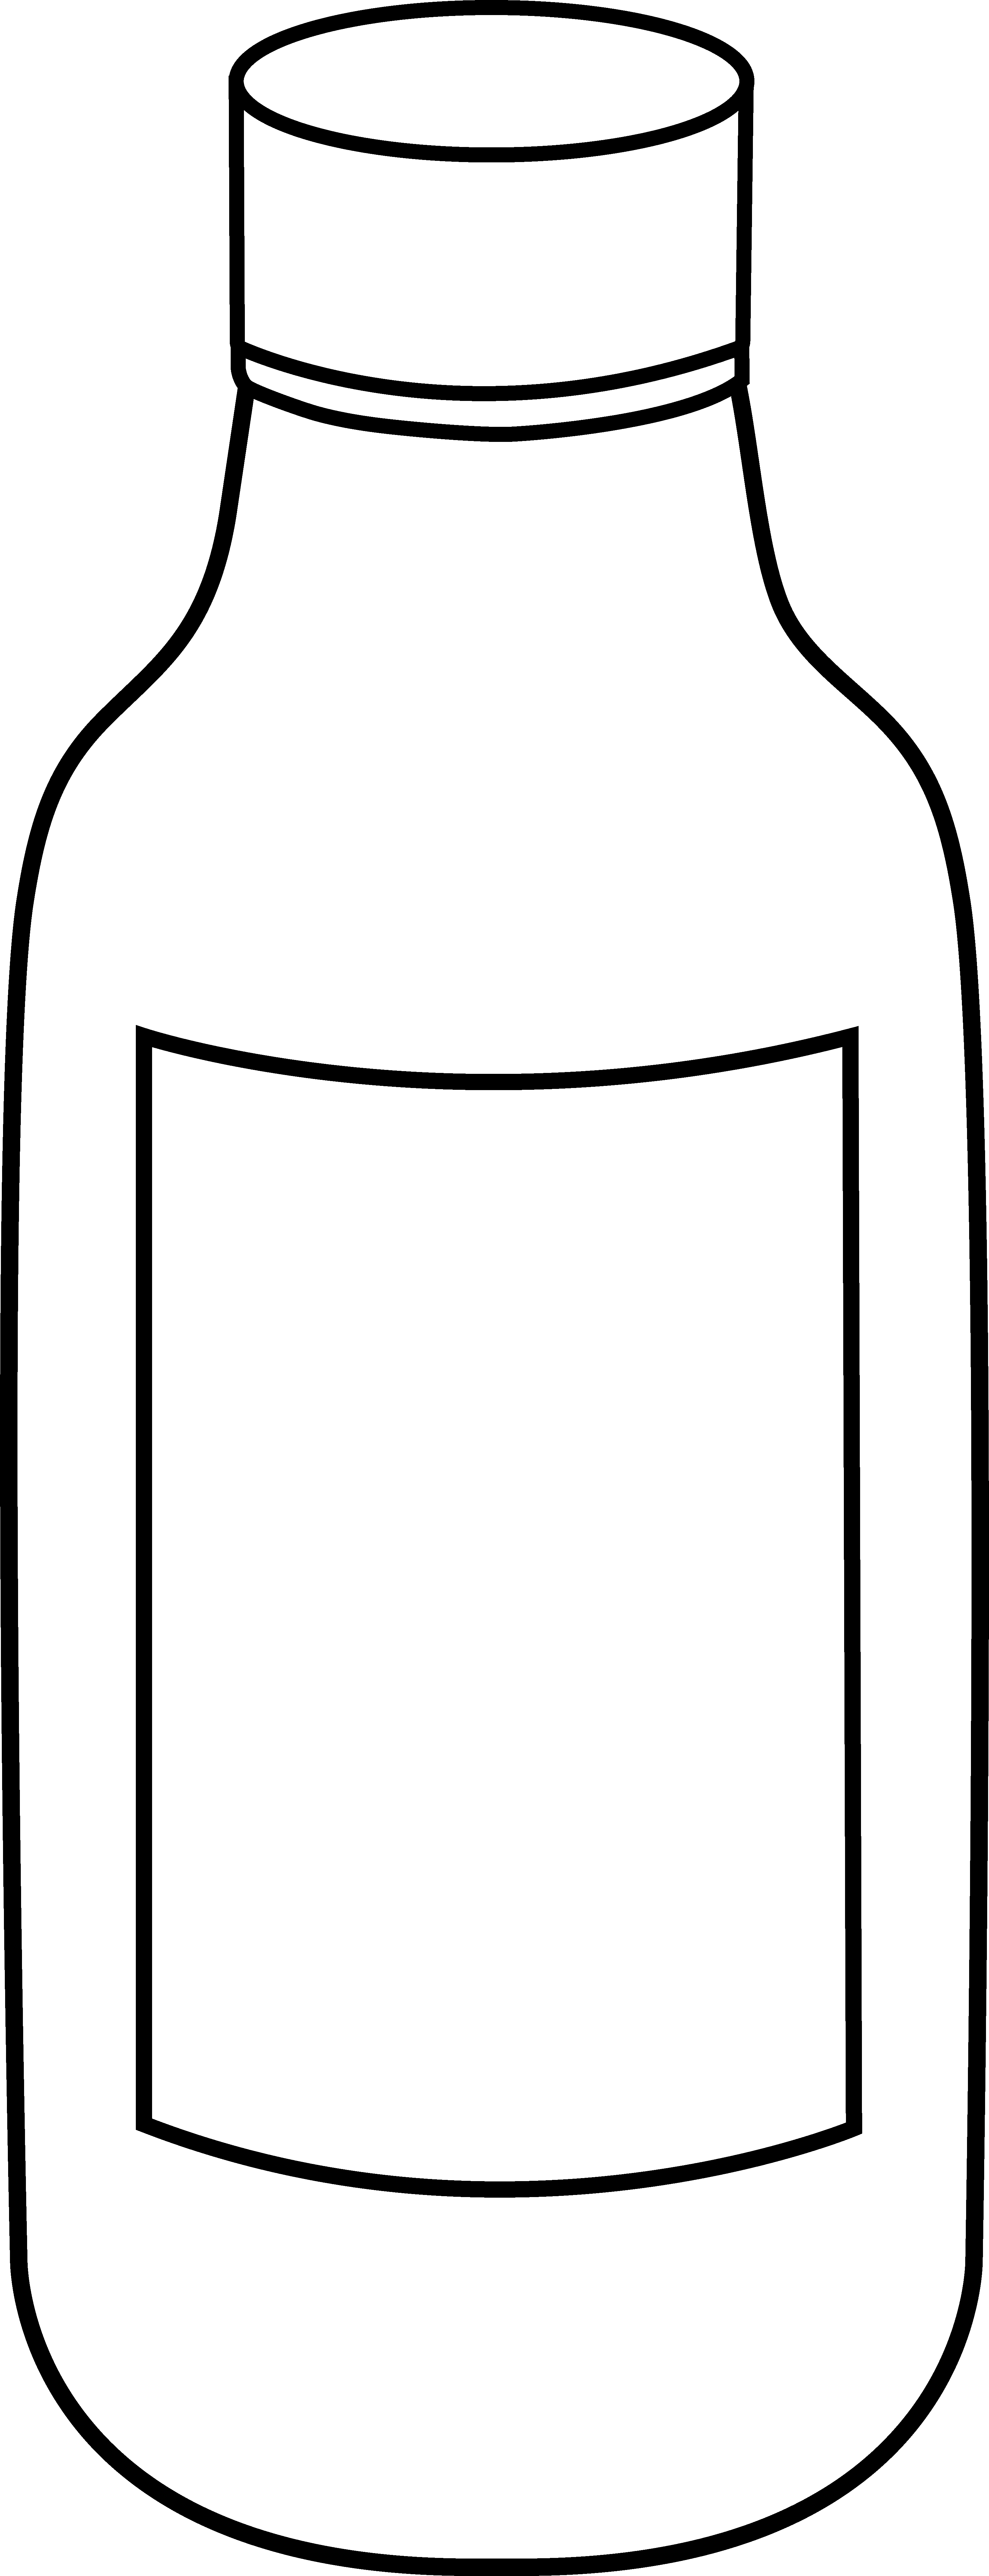 Free Baby Bottle Clipart Black And White, Download Free Clip.